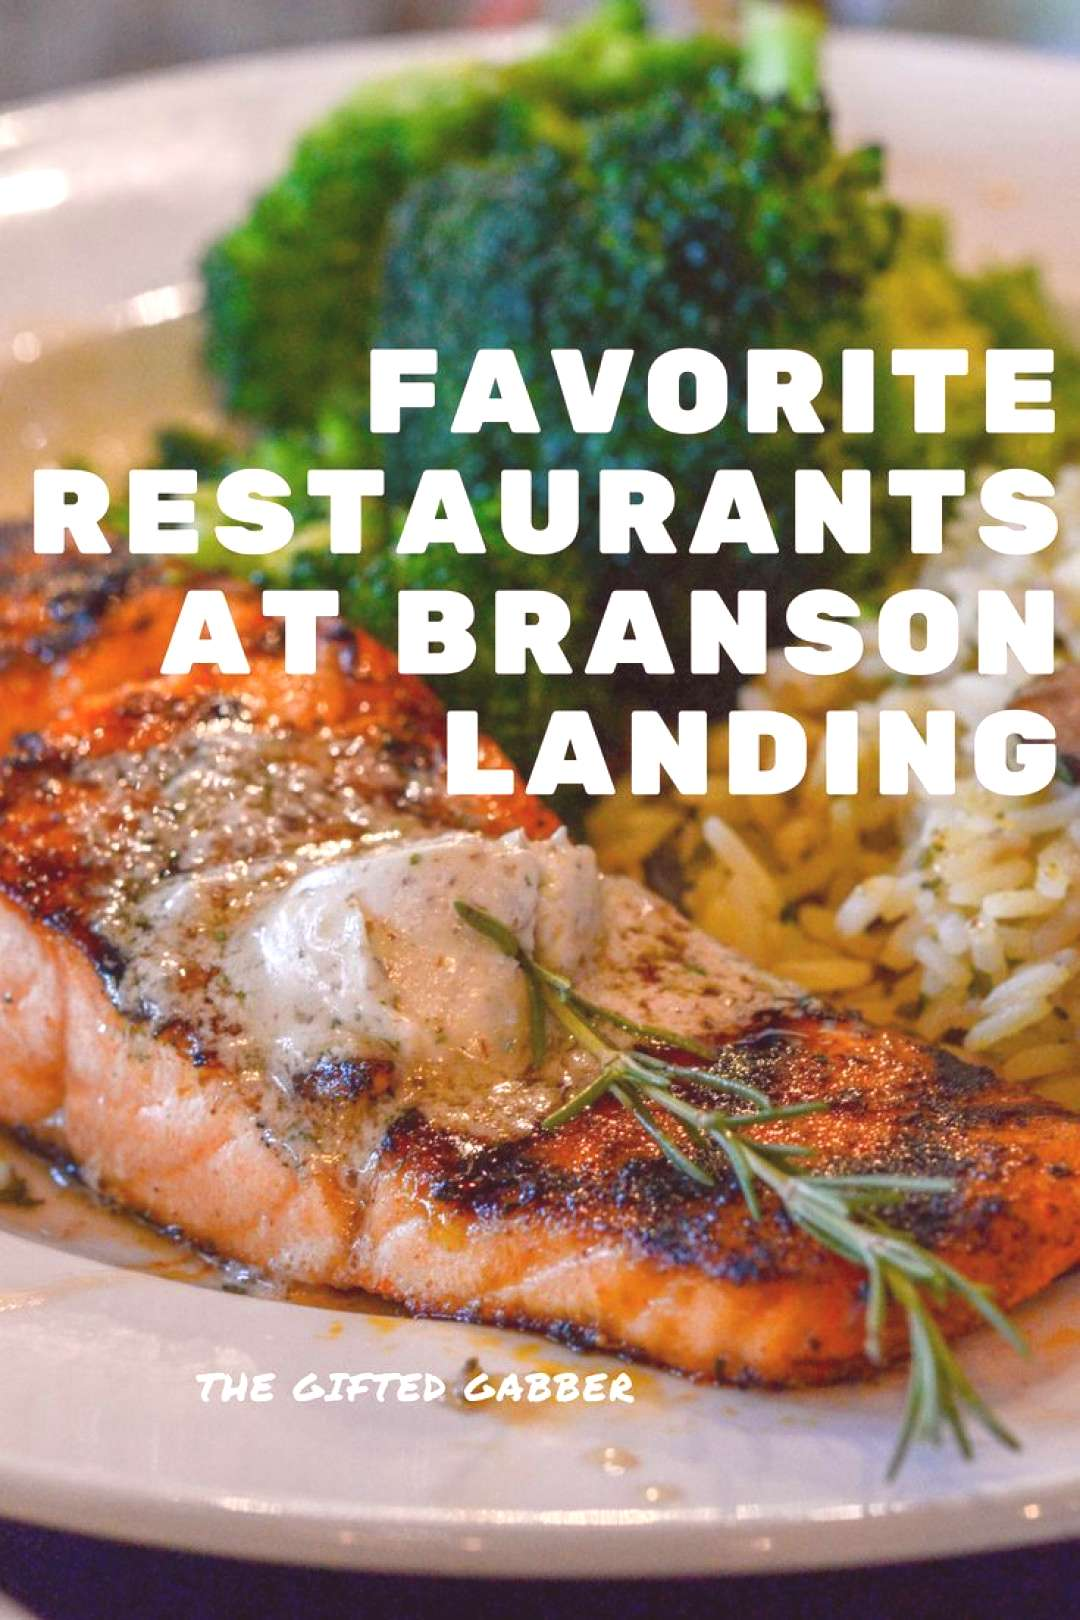 Places to eat in Branson Landing - Favorite restaurants in Branson Landing - The Gifted Gabbe... Pl